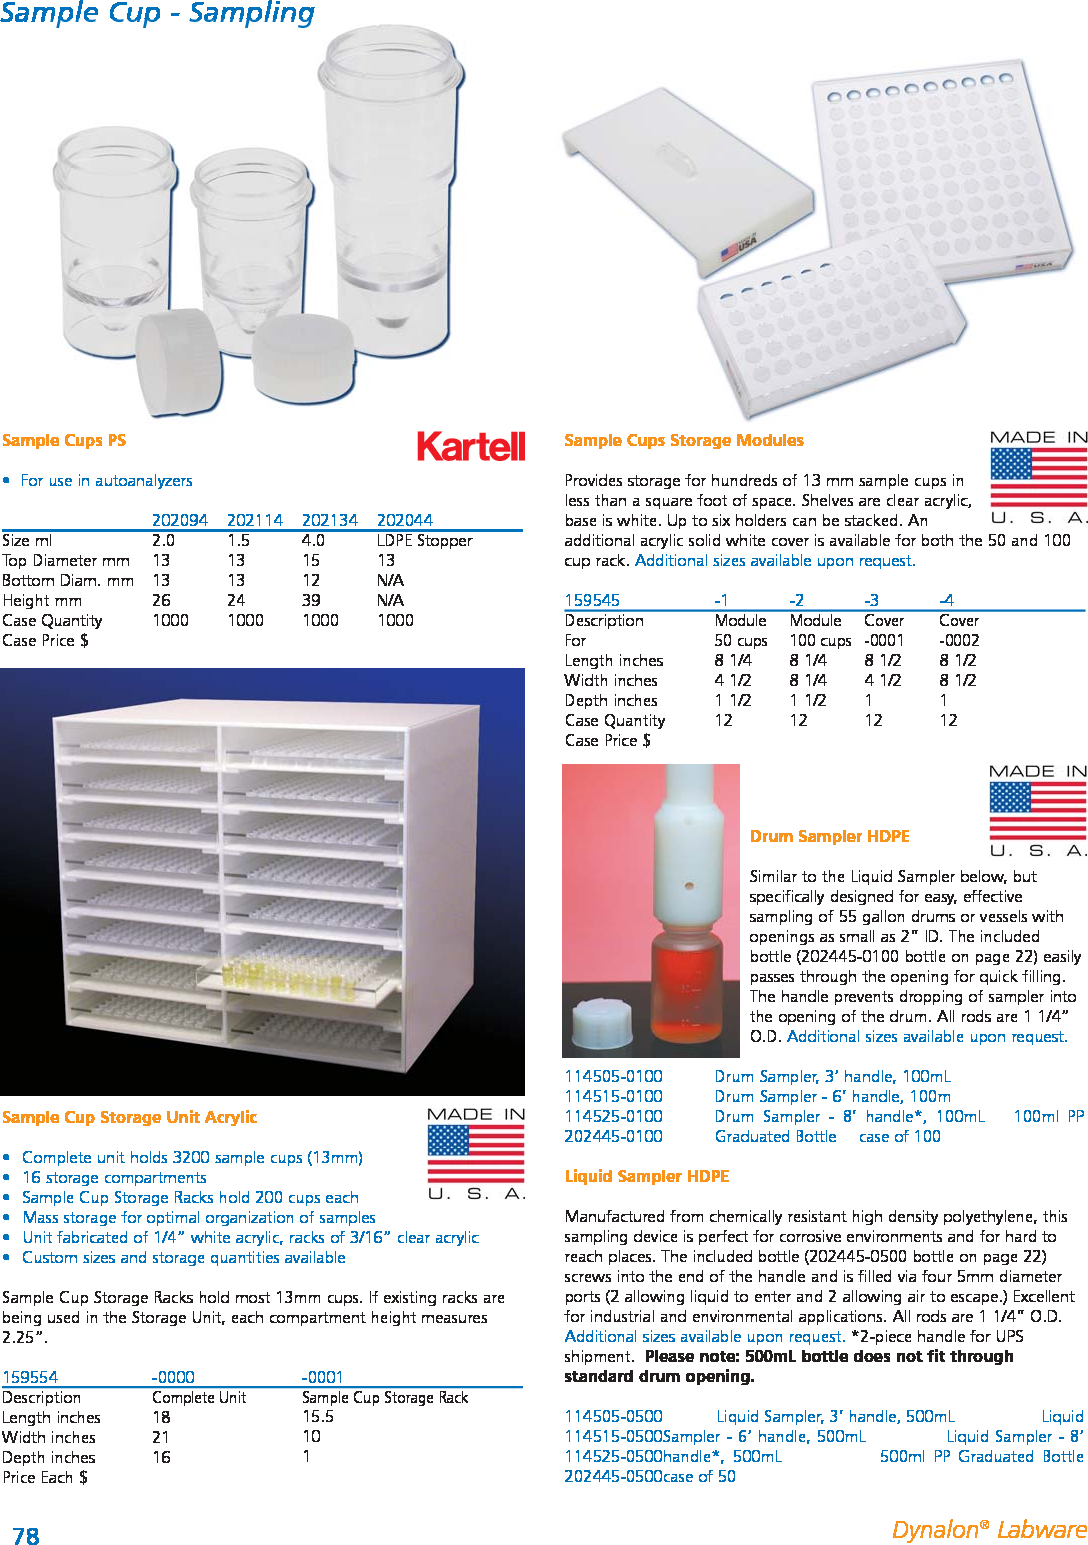 0173CatalogPage1Oct20200120.jpg